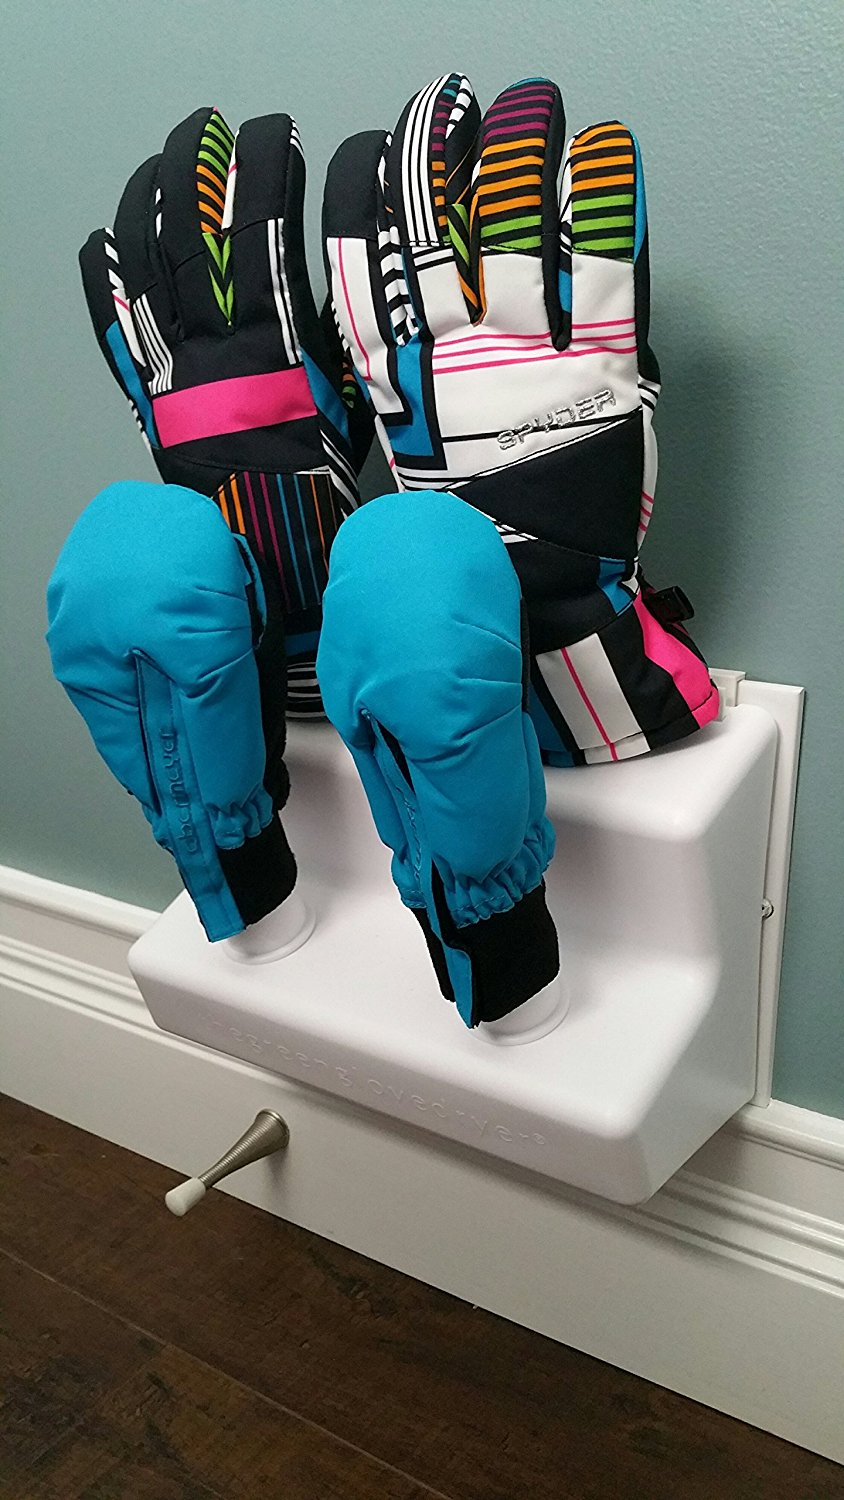 Green Glove Dryer for Hats, Gloves, Shoes and Mittens - Wall Unit